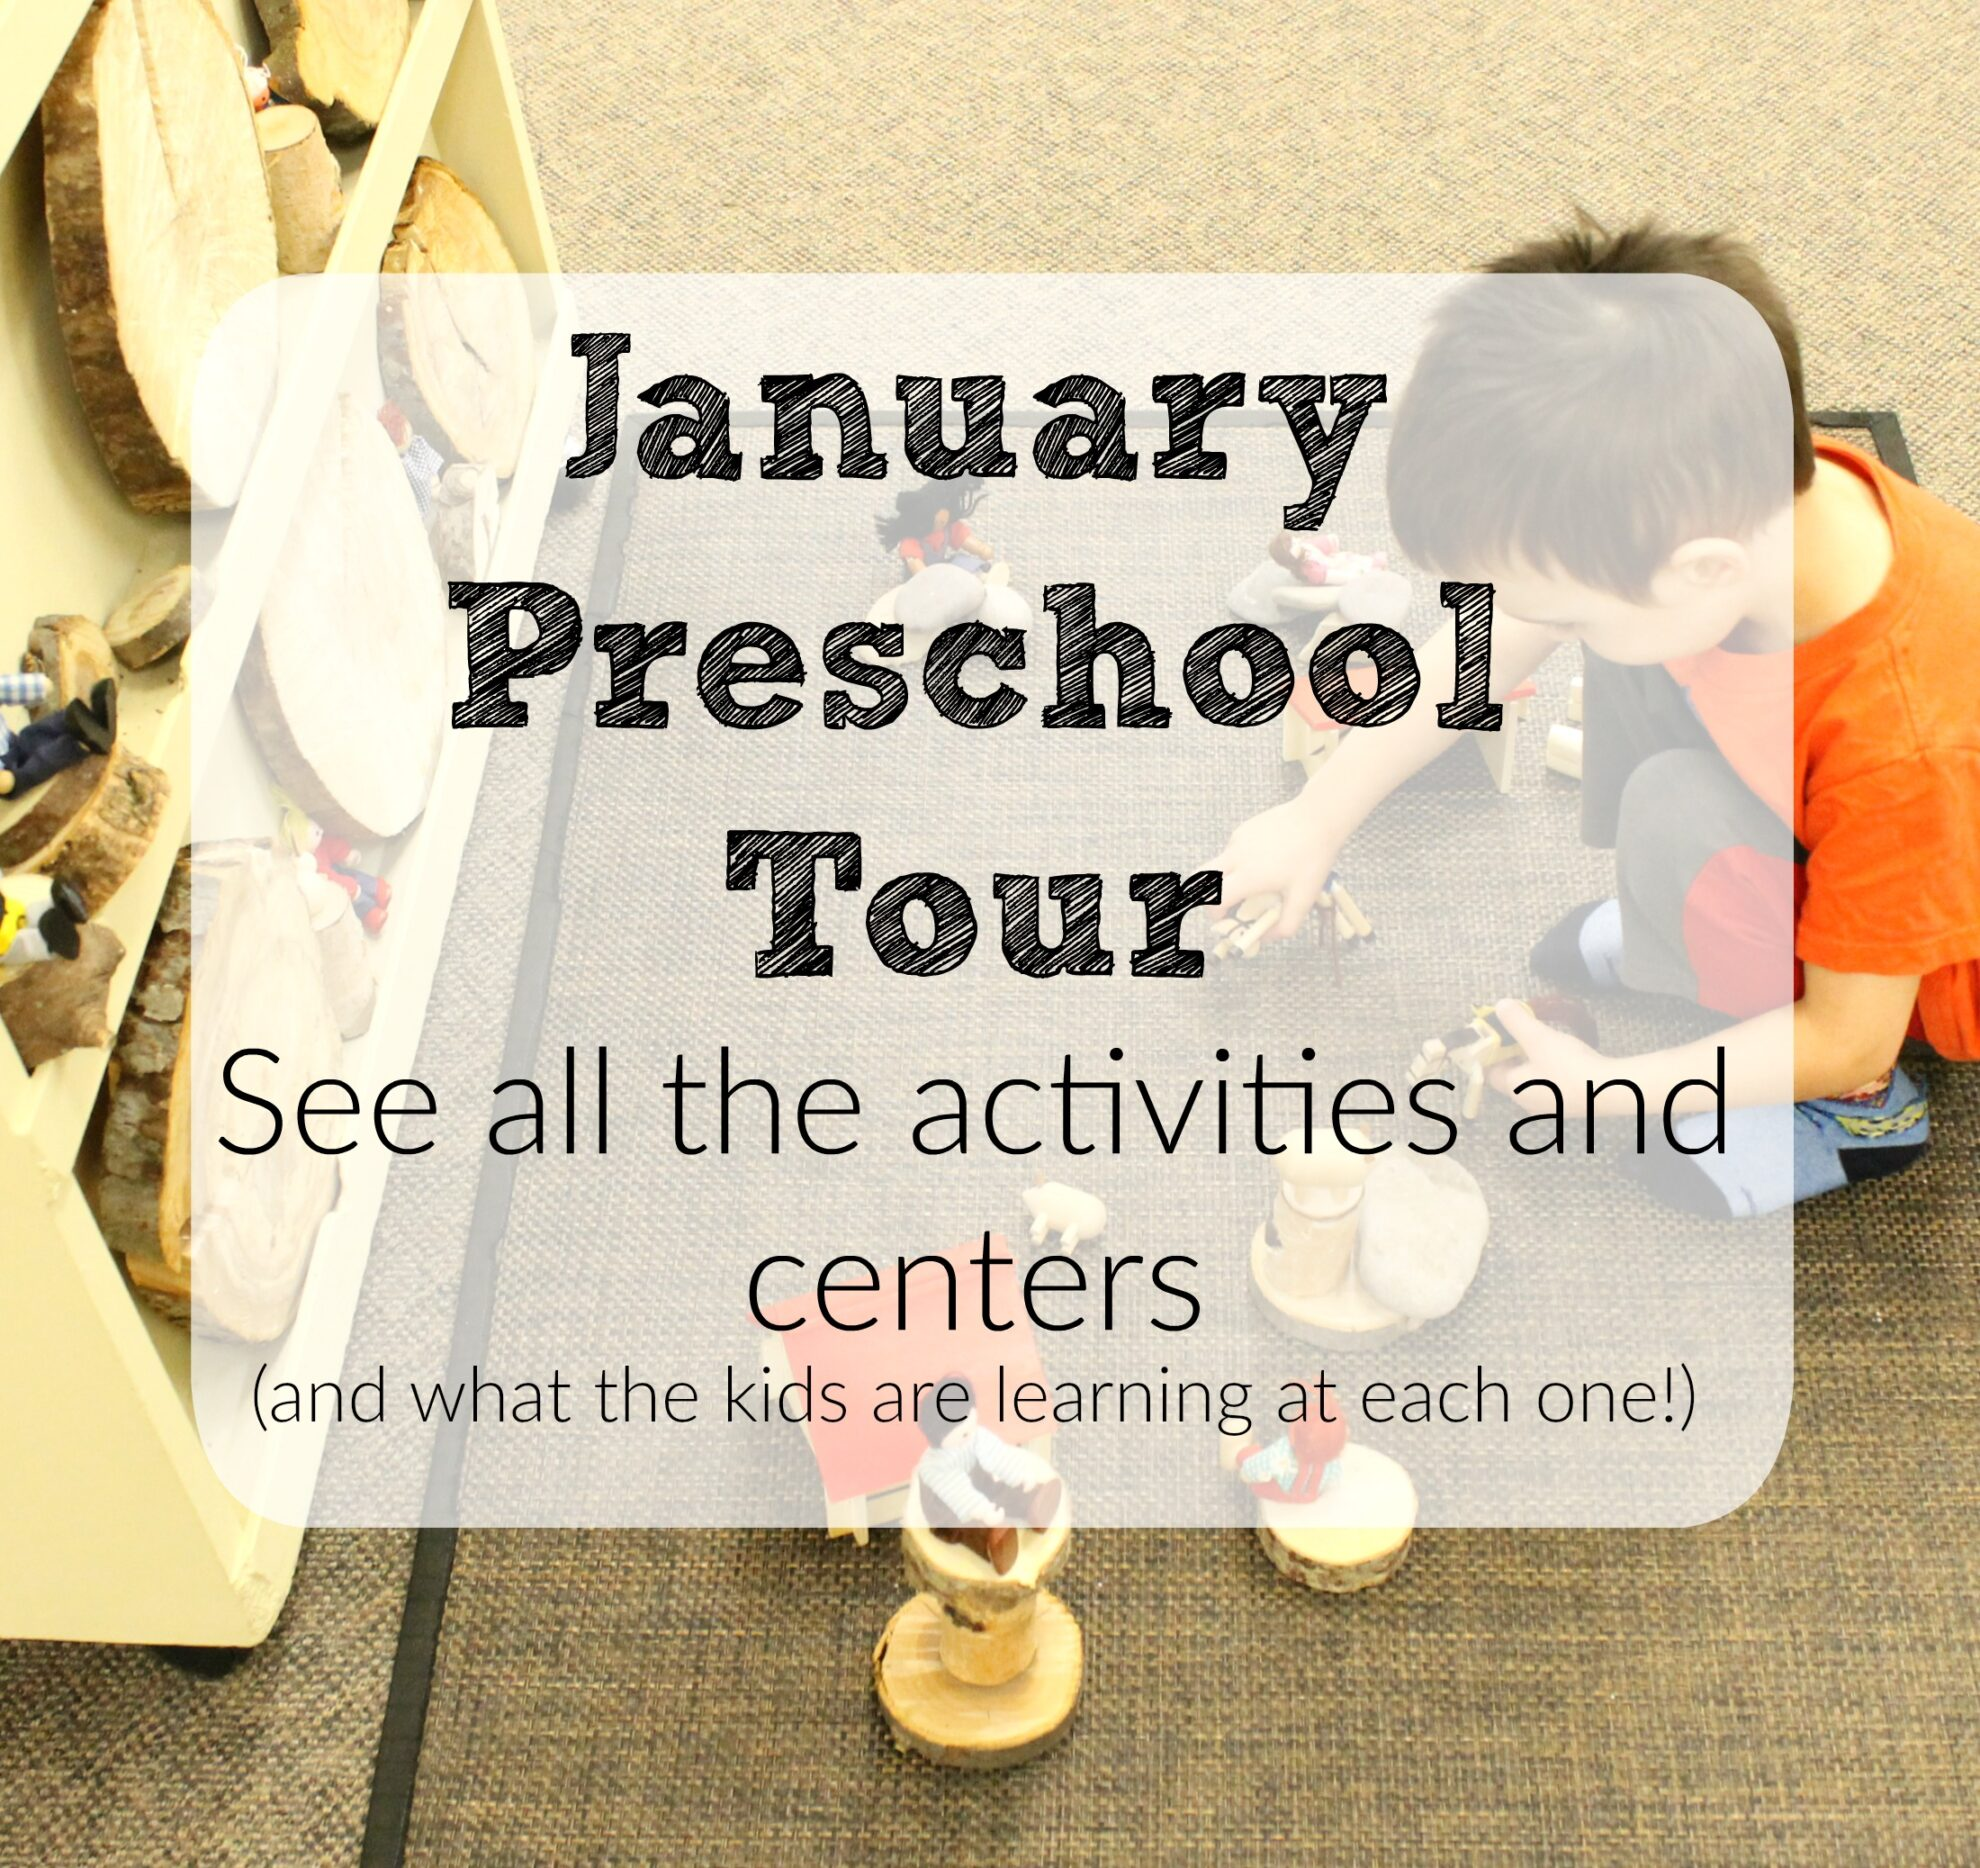 Tour of a preschool classroom - the activities and centers and what the preschoolers are learning at each one!